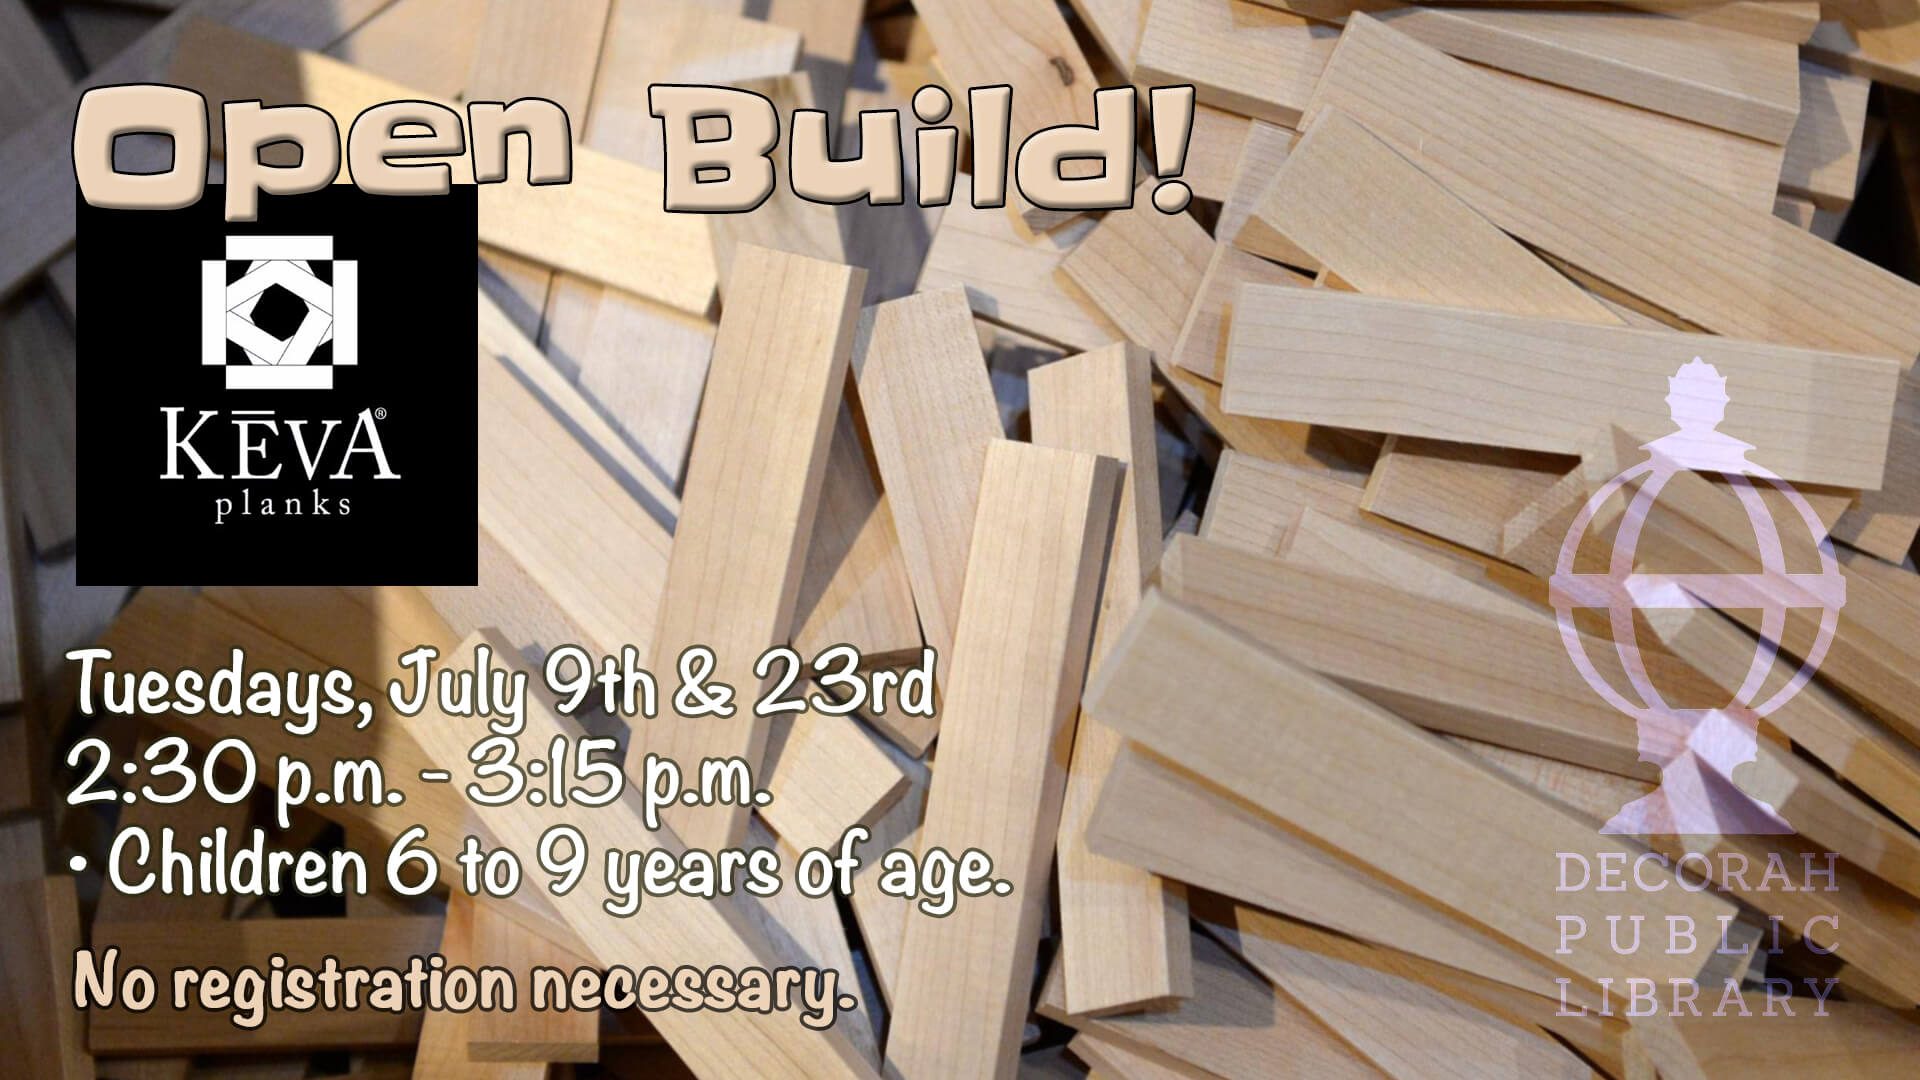 Open Build July 9th and 23rd